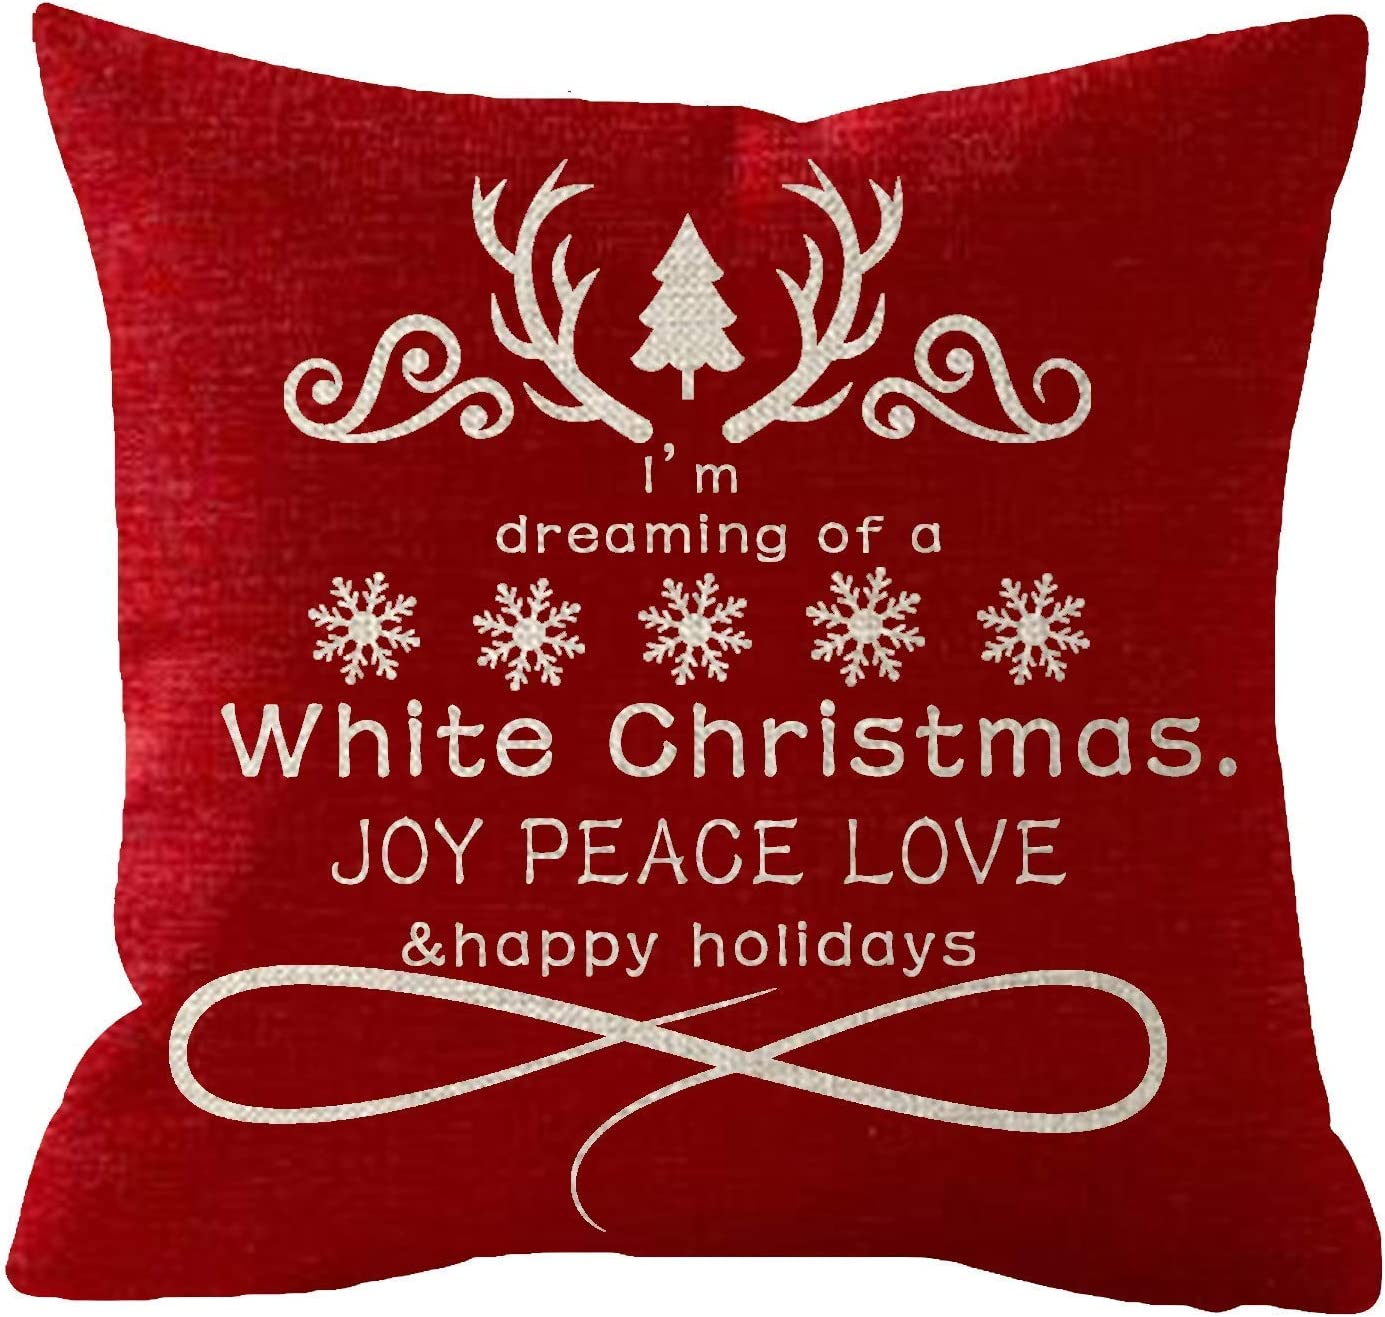 Newhomestyle Throw Pillow Cover Happy Holiday Snowflakes Trees Im Dreaming of A White Christmas Red Cotton Home Decor Square Cushion Pillowcase 24x24 in